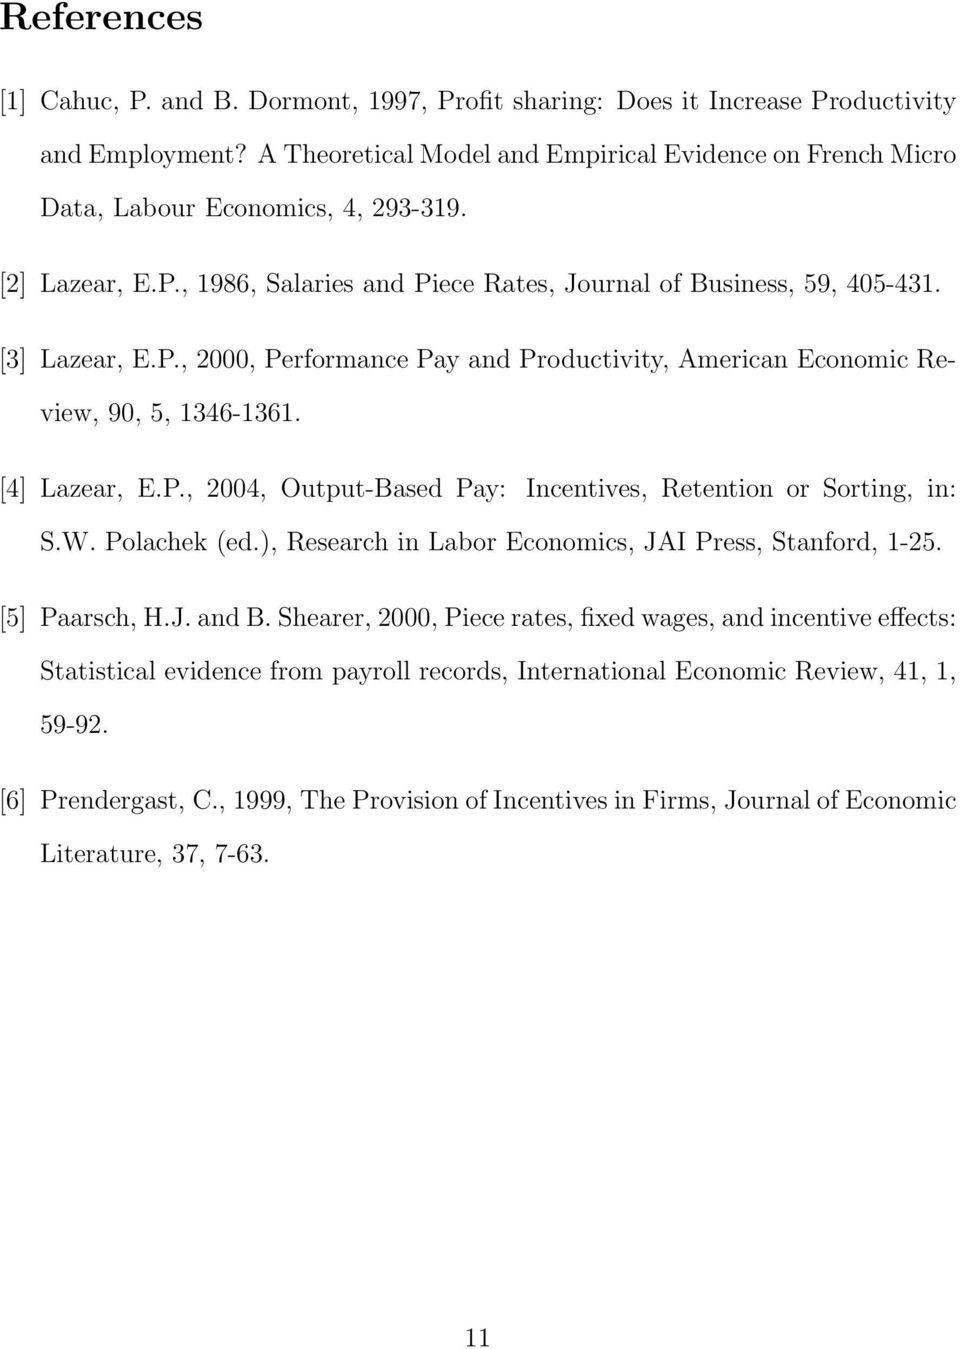 [4] Lazear, E.P., 2004, Output-Based Pay: Incentives, Retention or Sorting, in: S.W. Polachek (ed.), Research in Labor Economics, JAI Press, Stanford, 1-25. [5] Paarsch, H.J. and B.